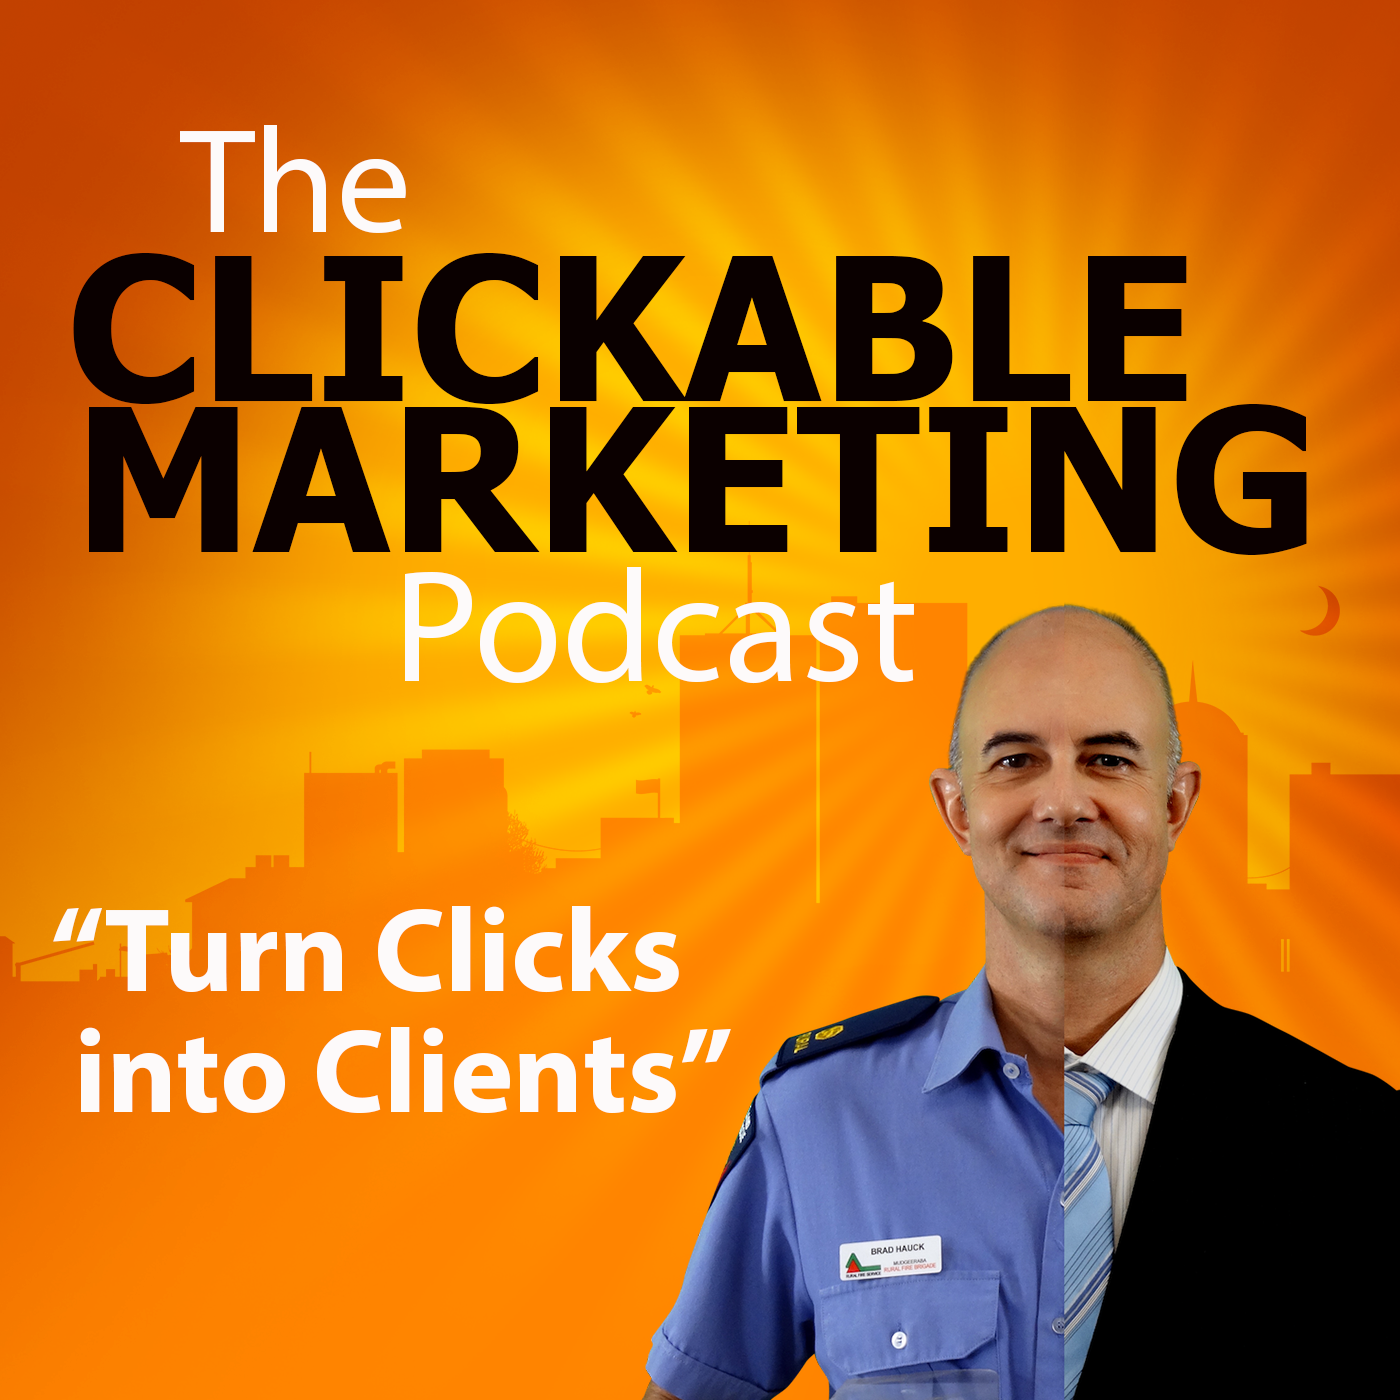 The Clickable Marketing Podcast